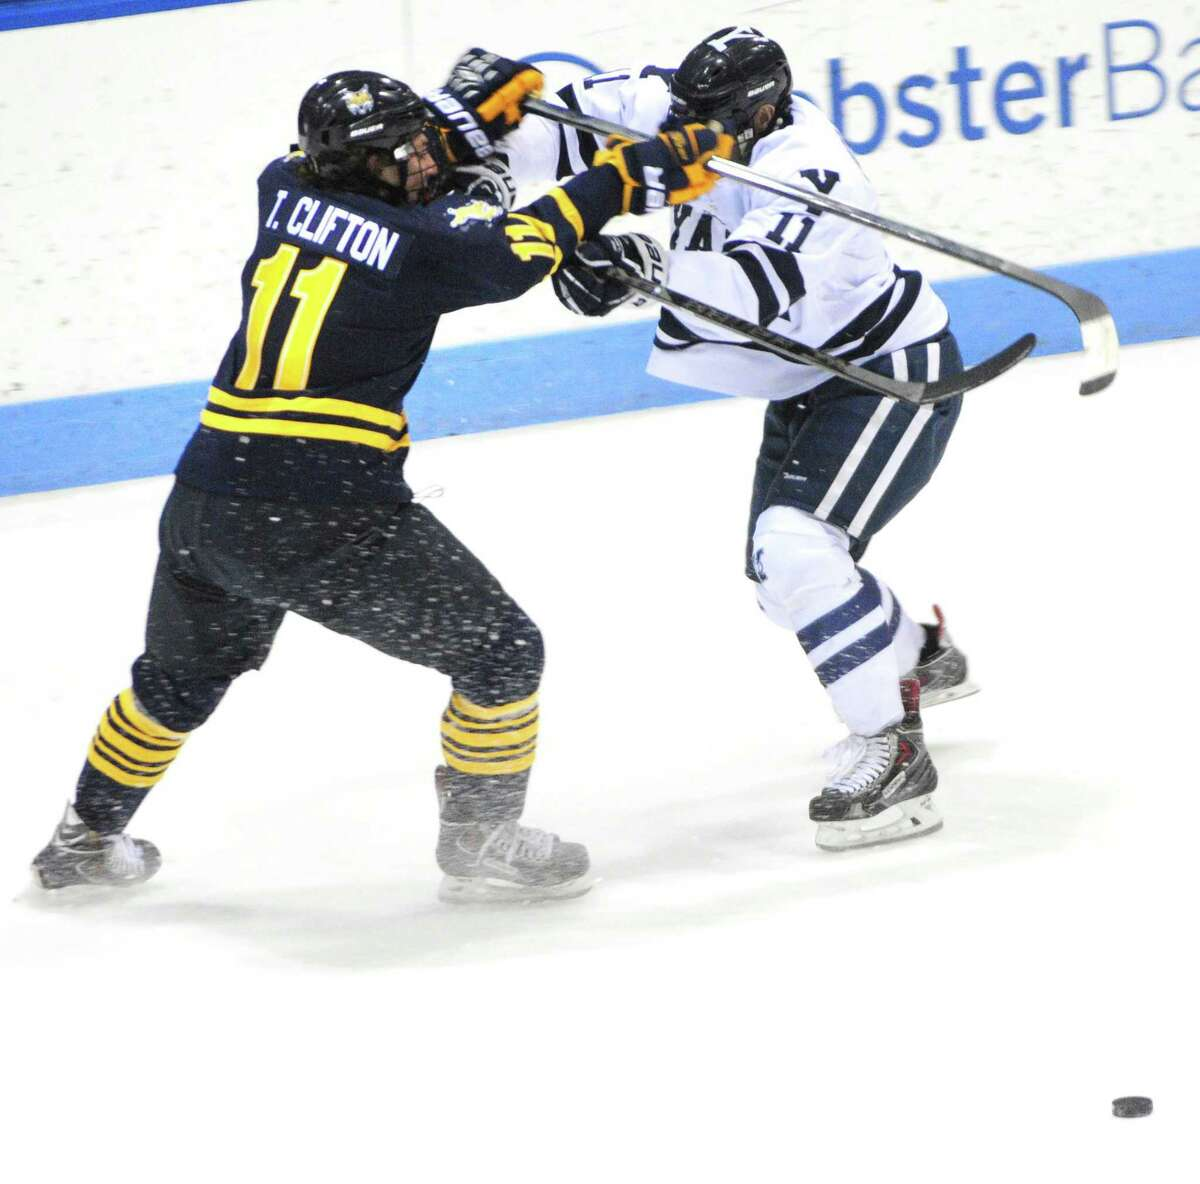 (Arnold Gold ó New Haven Register) Tim Clifton (left) of Quinnipiac and Trent Ruffolo of Yale fight for the puck in the first period at Ingalls Rink in New Haven on 2/14/2014.